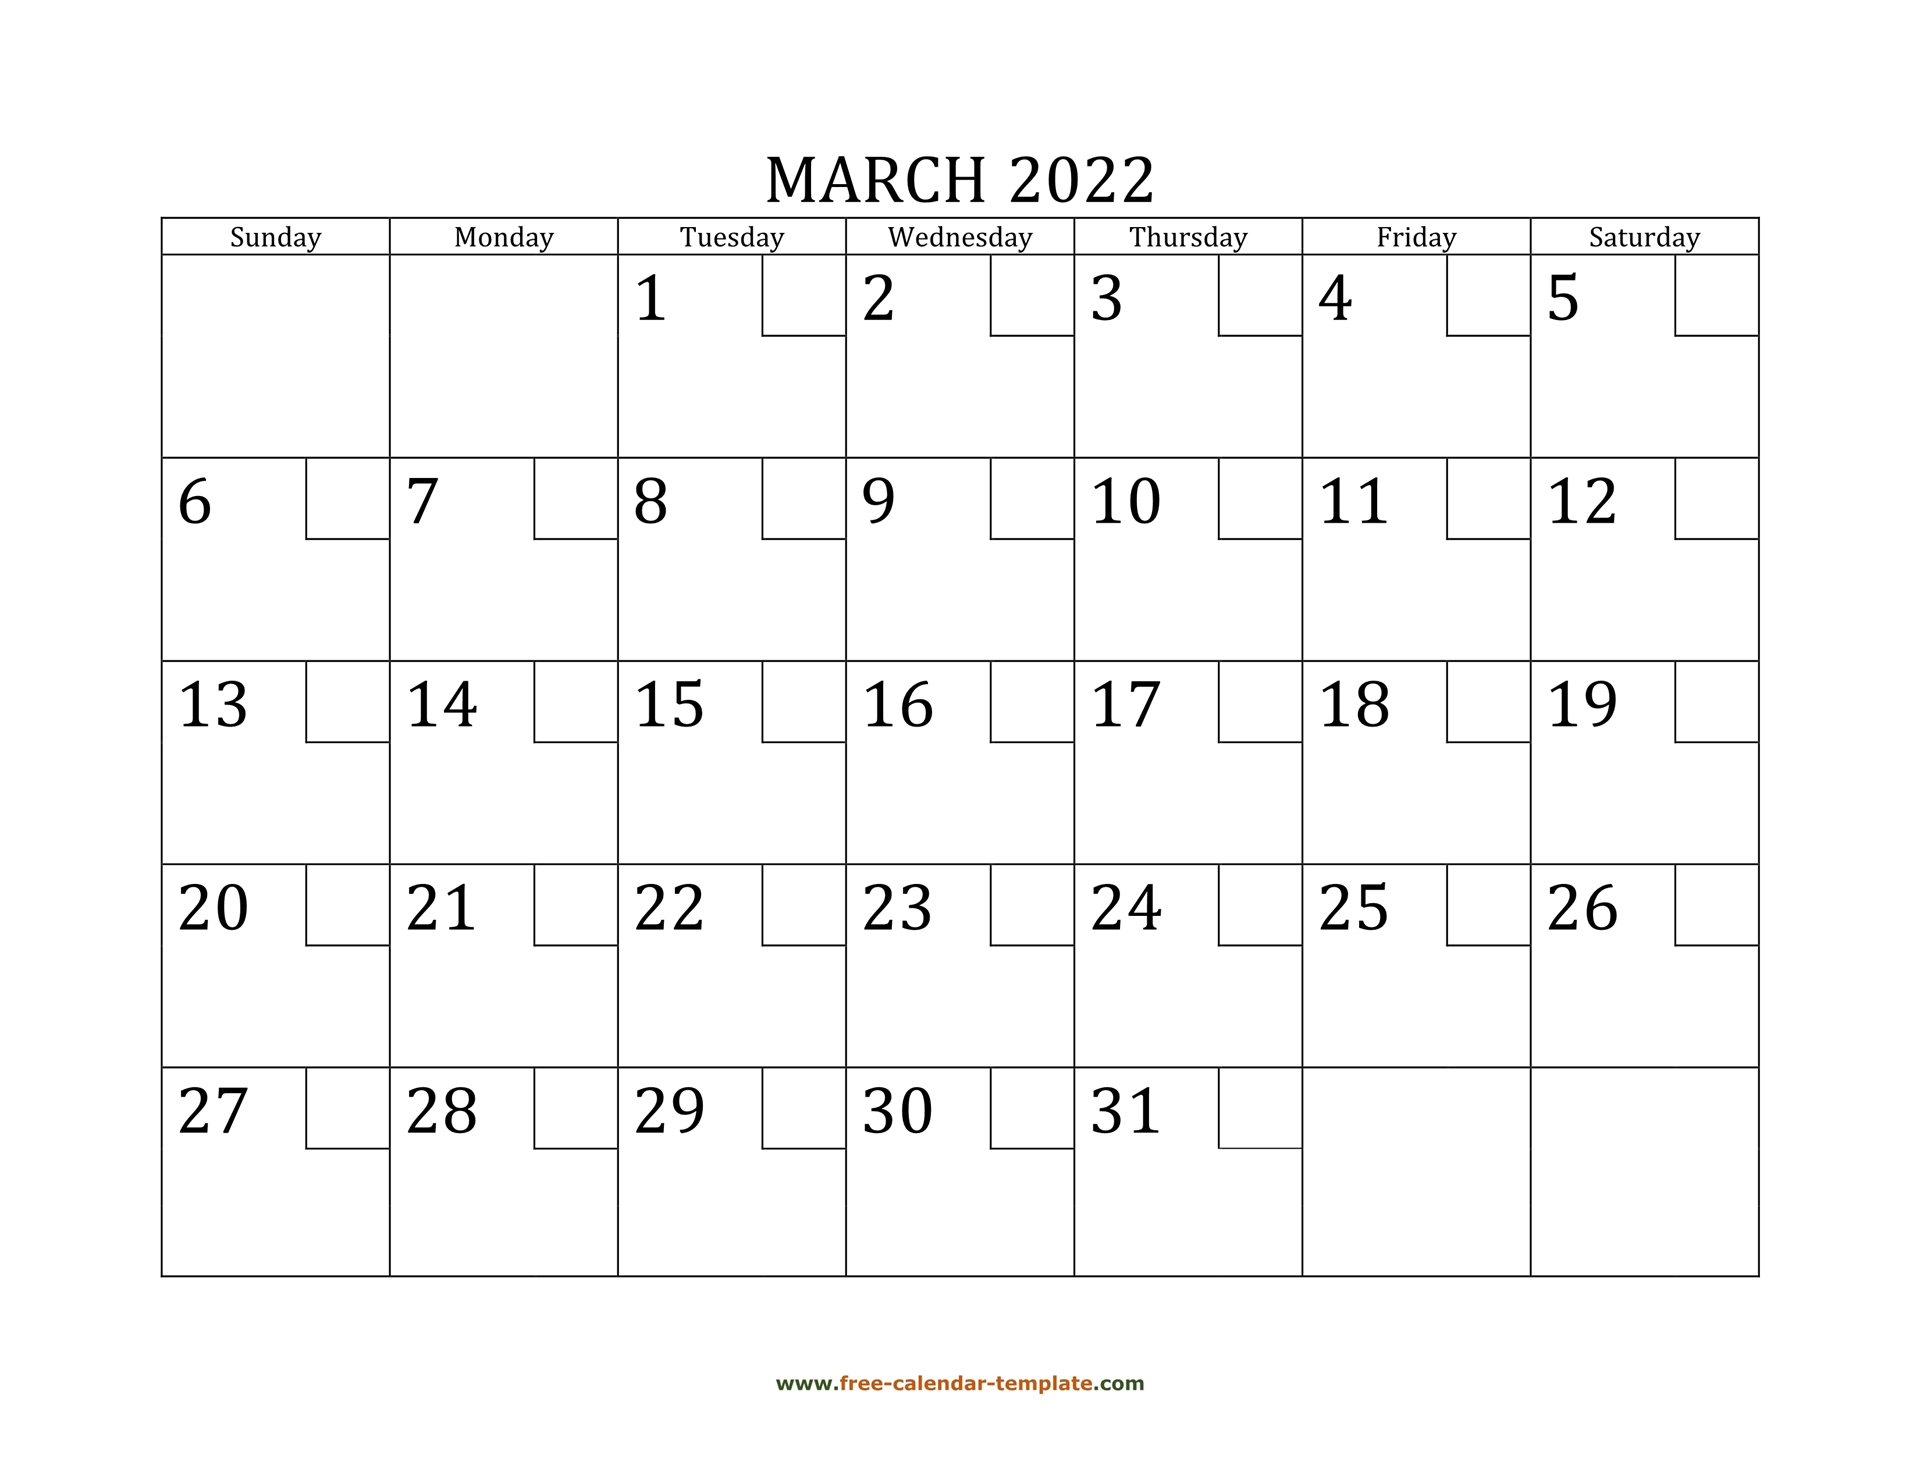 March 2022 Free Calendar Tempplate | Free Calendar Throughout Caladar For The Mont Of March 2022